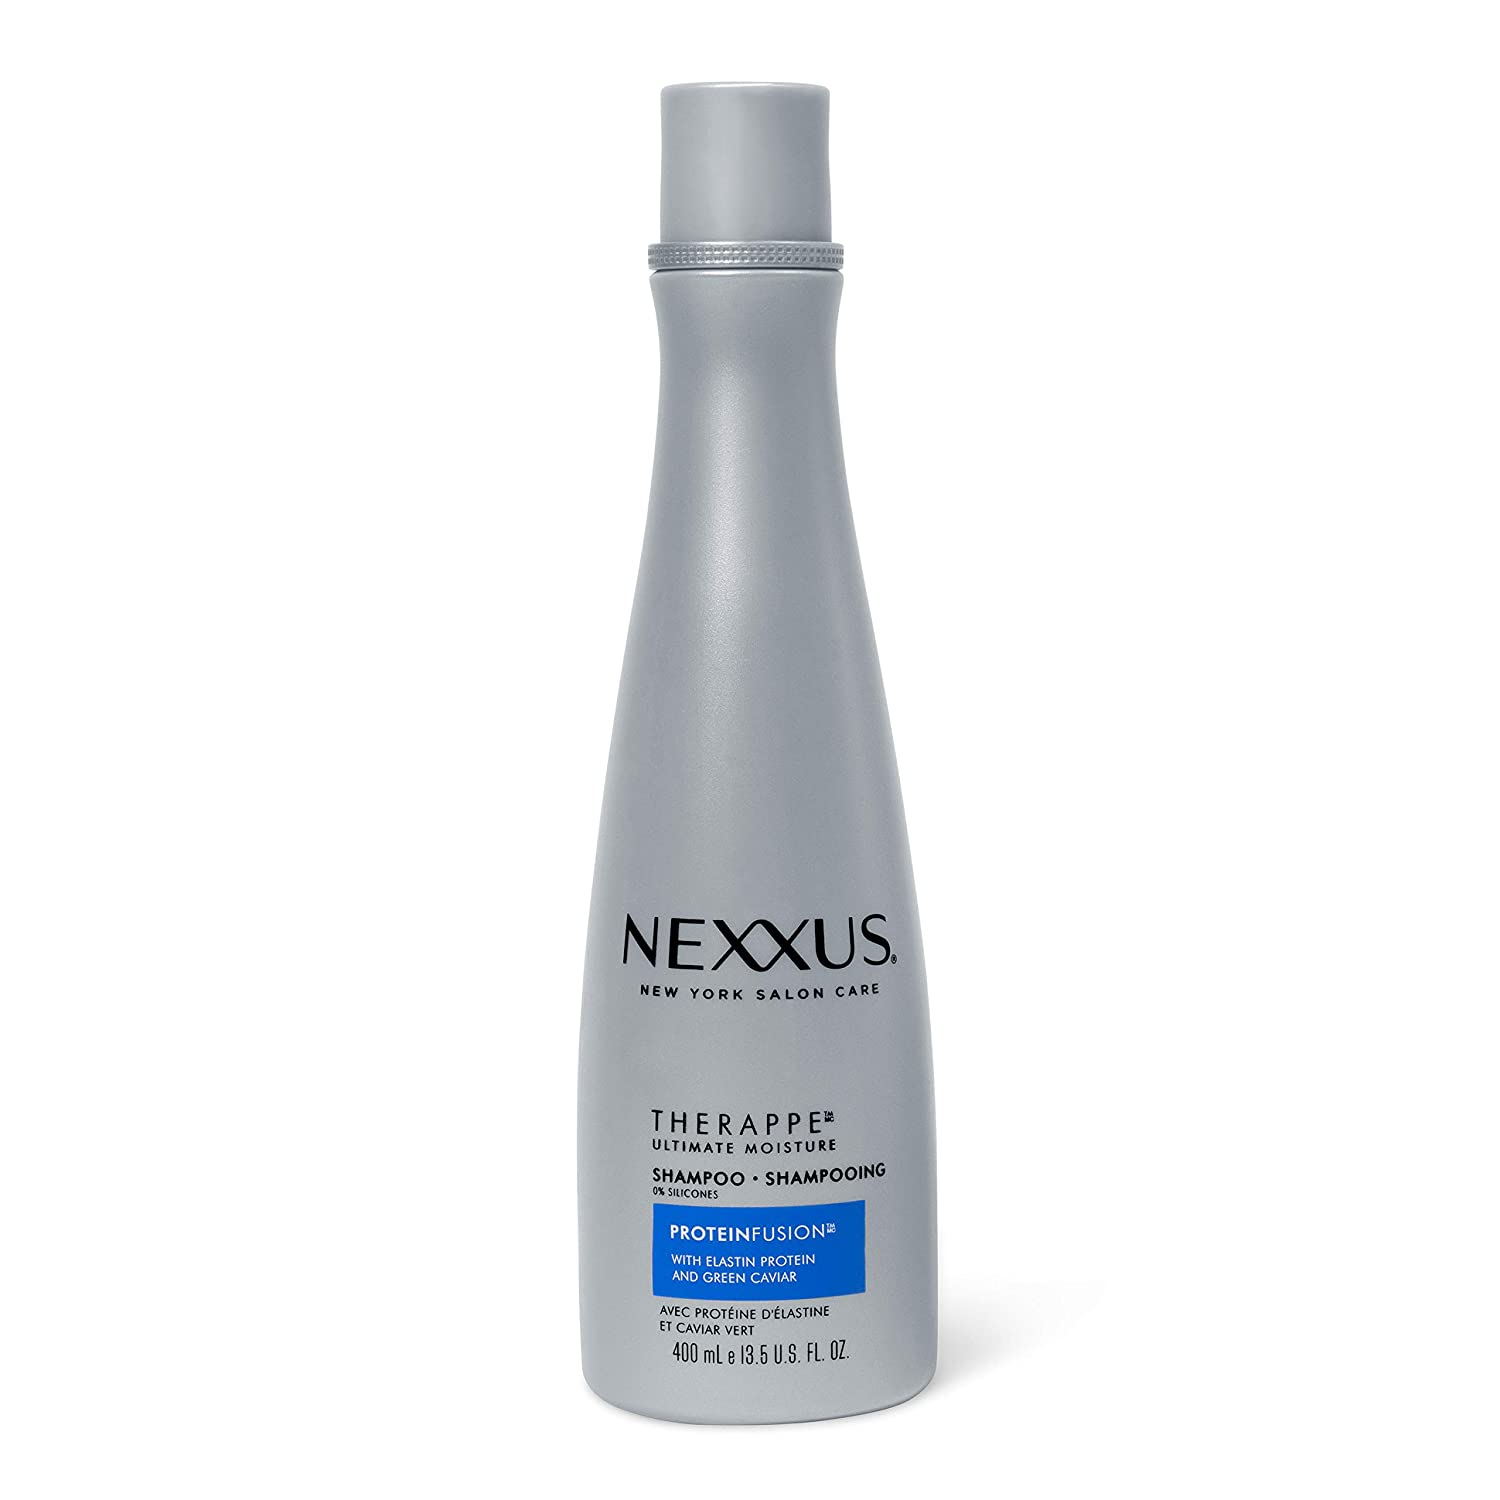 Nexxus Therappe Shampoo For Normal to Dry Hair Ultimate Moisture Silicone-Free 13.5 oz